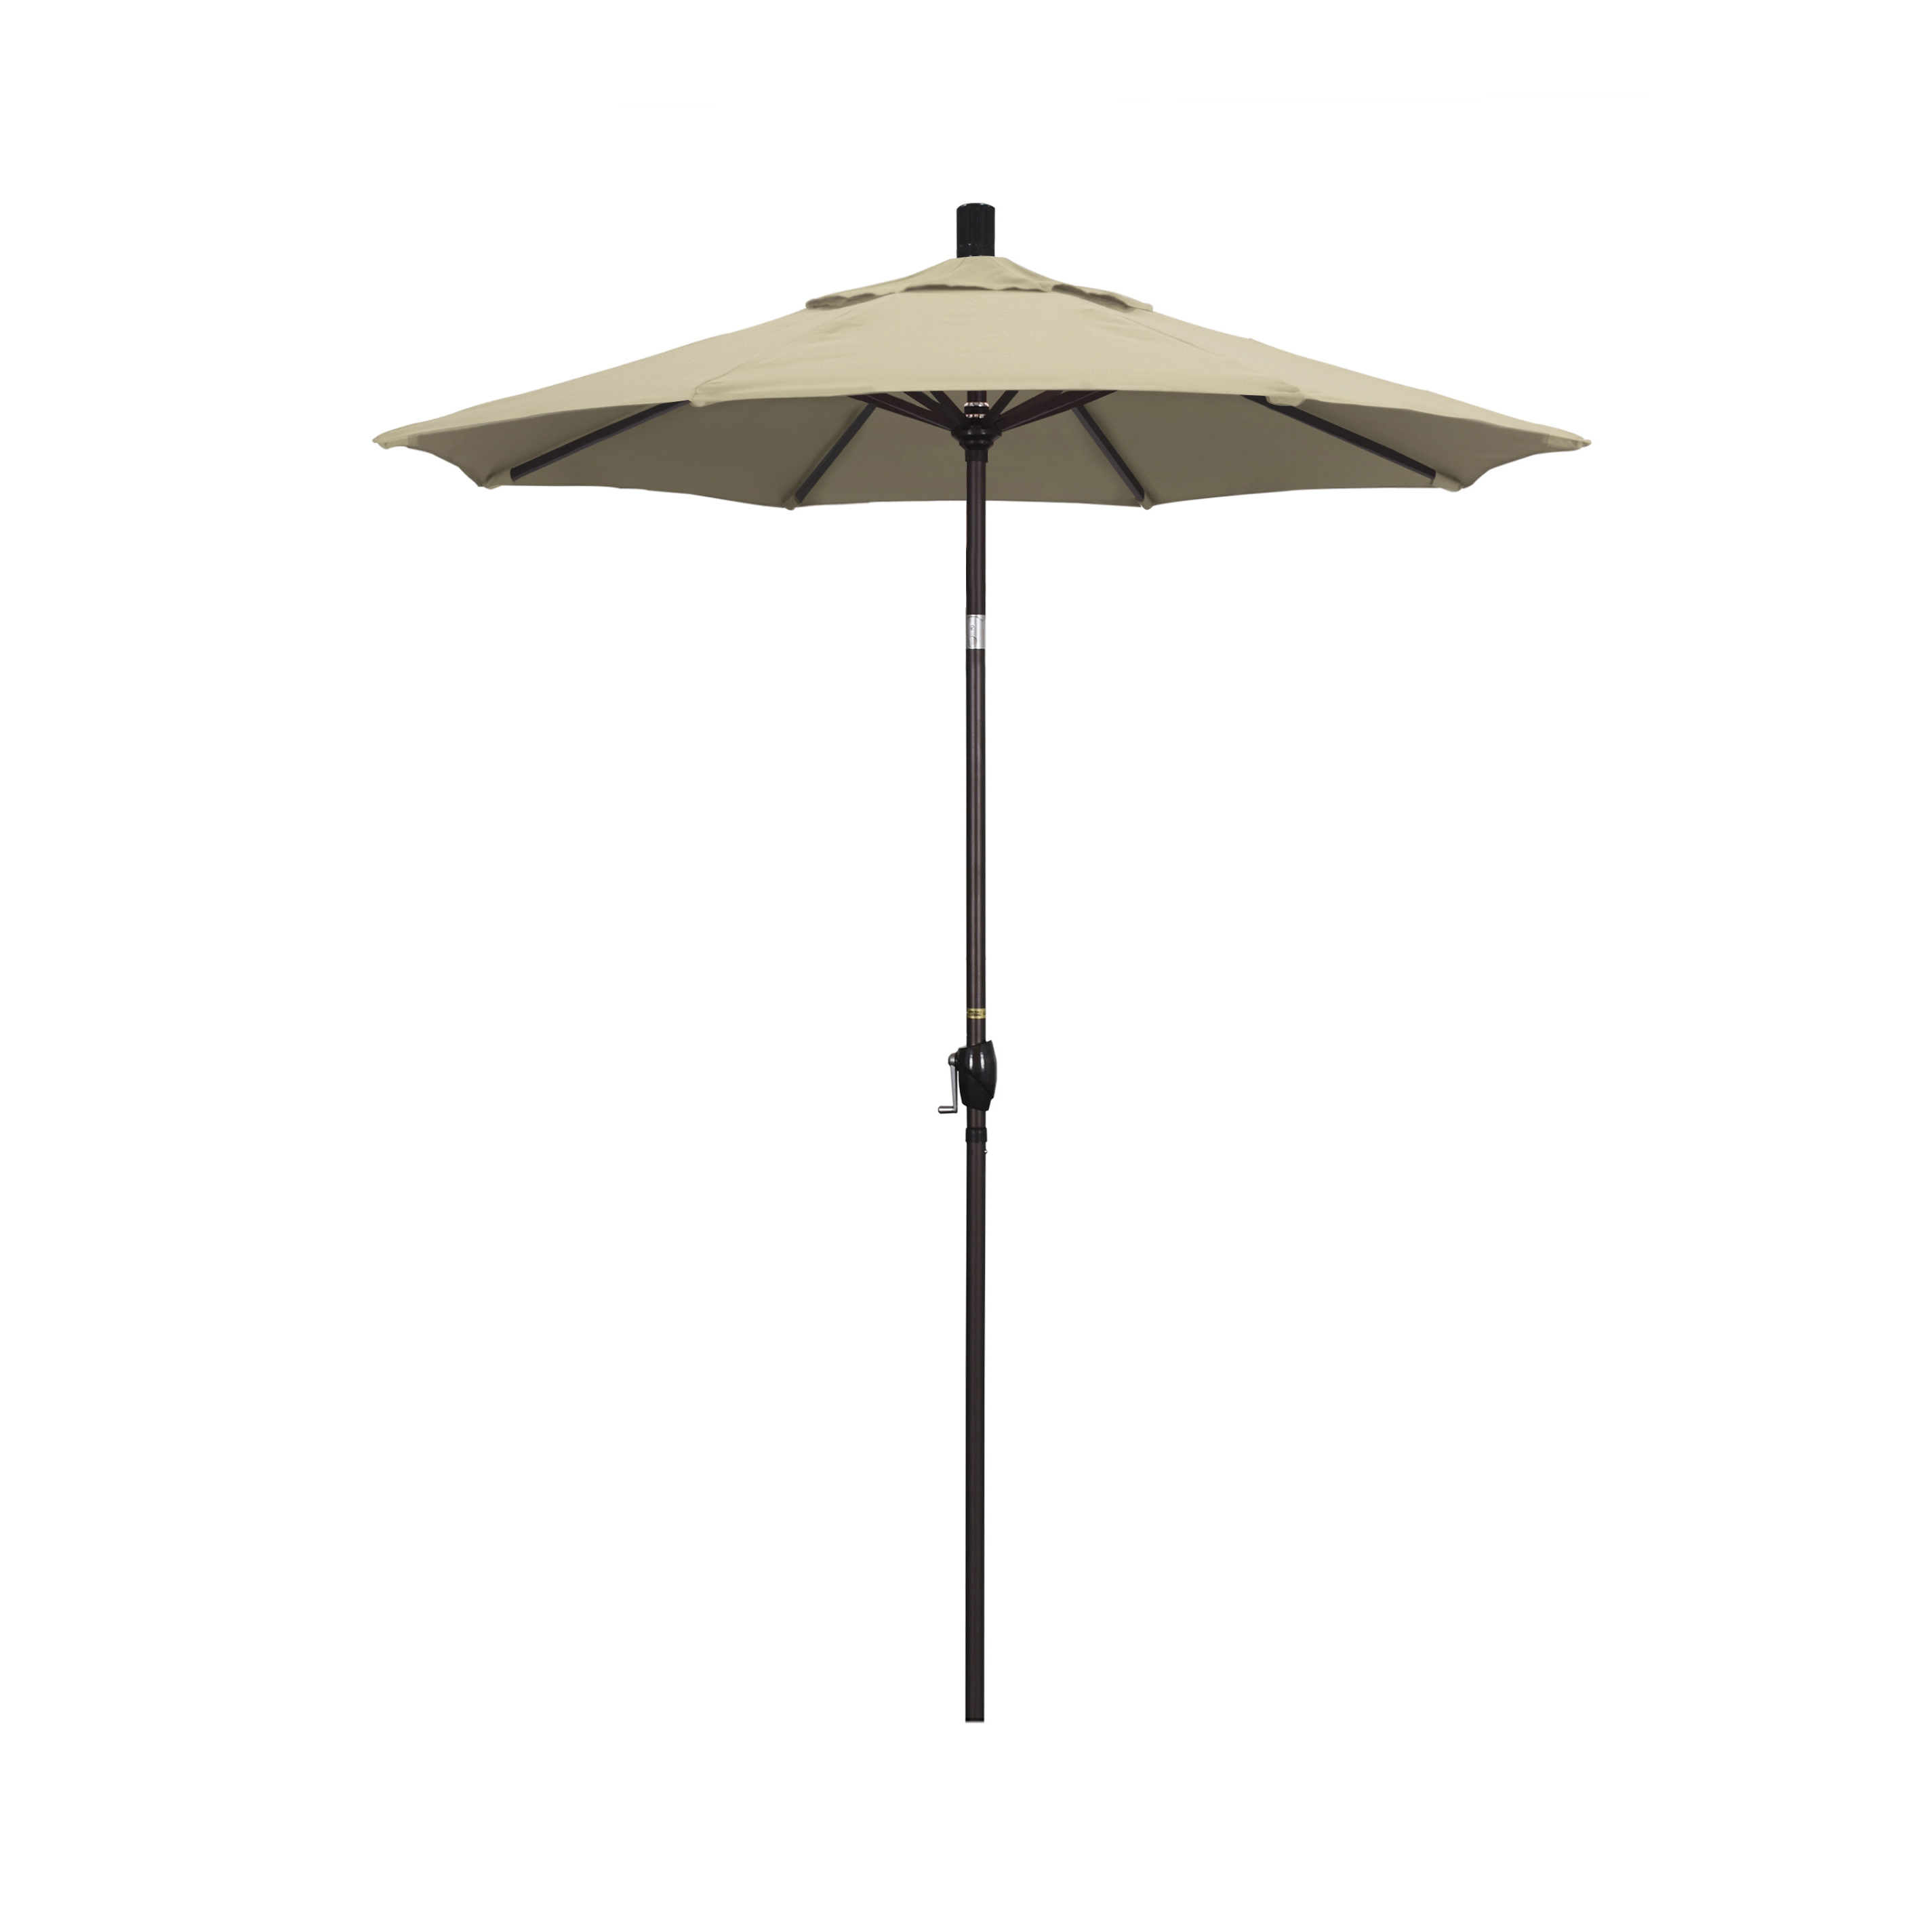 Wallach Market Sunbrella Umbrellas Intended For Most Up To Date Wallach 6' Market Sunbrella Umbrella (View 2 of 20)